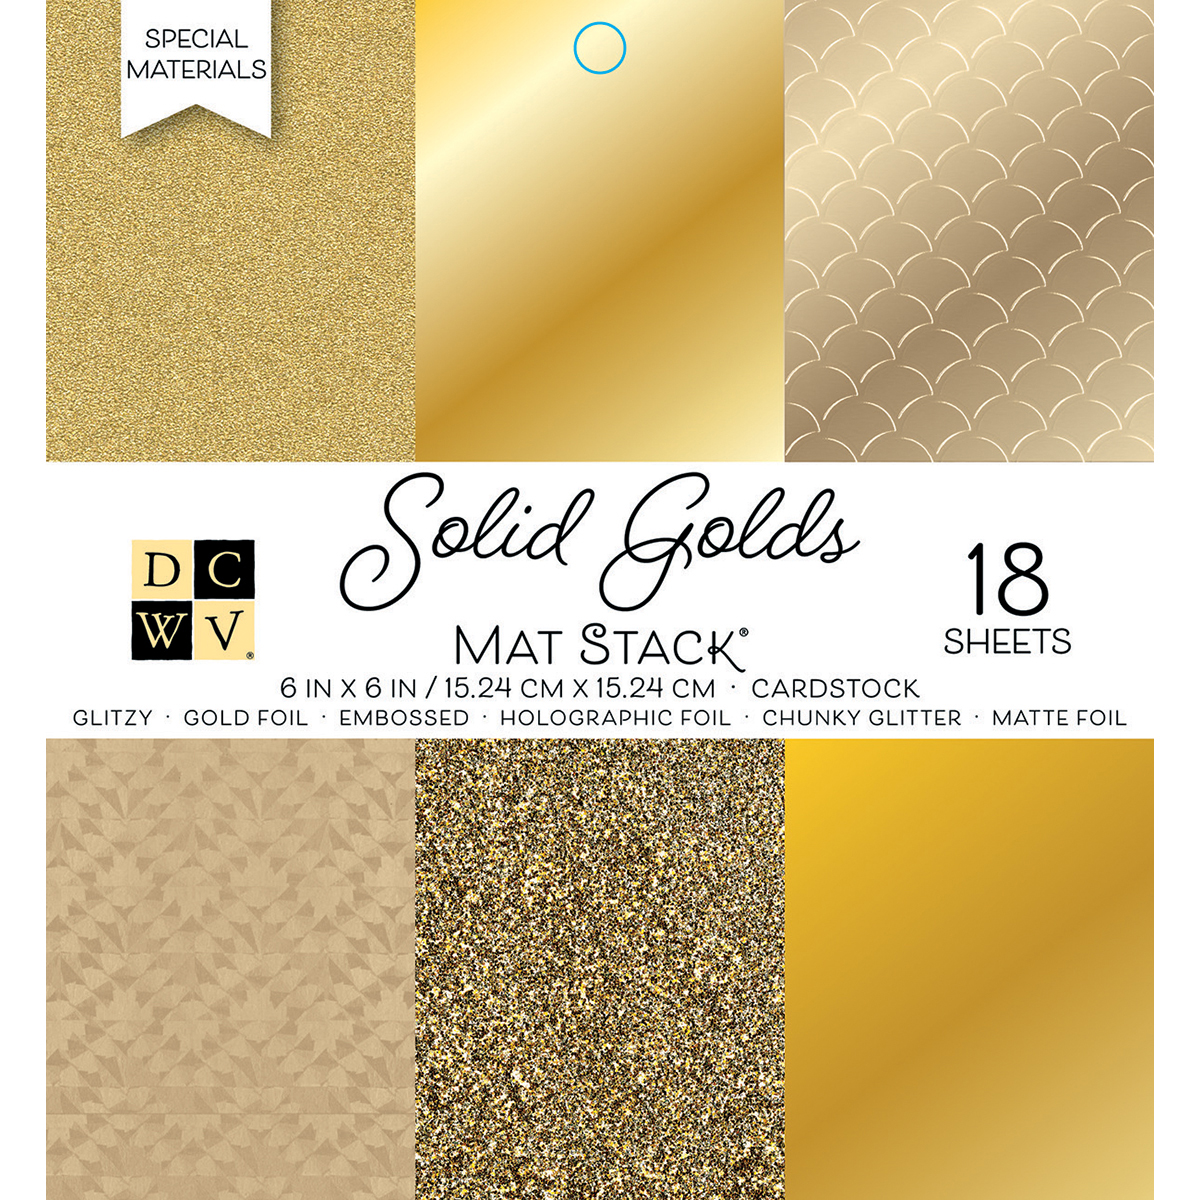 DCWV Single-Sided Cardstock Stack 6X6 18/Pkg-Solid Golds, 6 designs/3 each